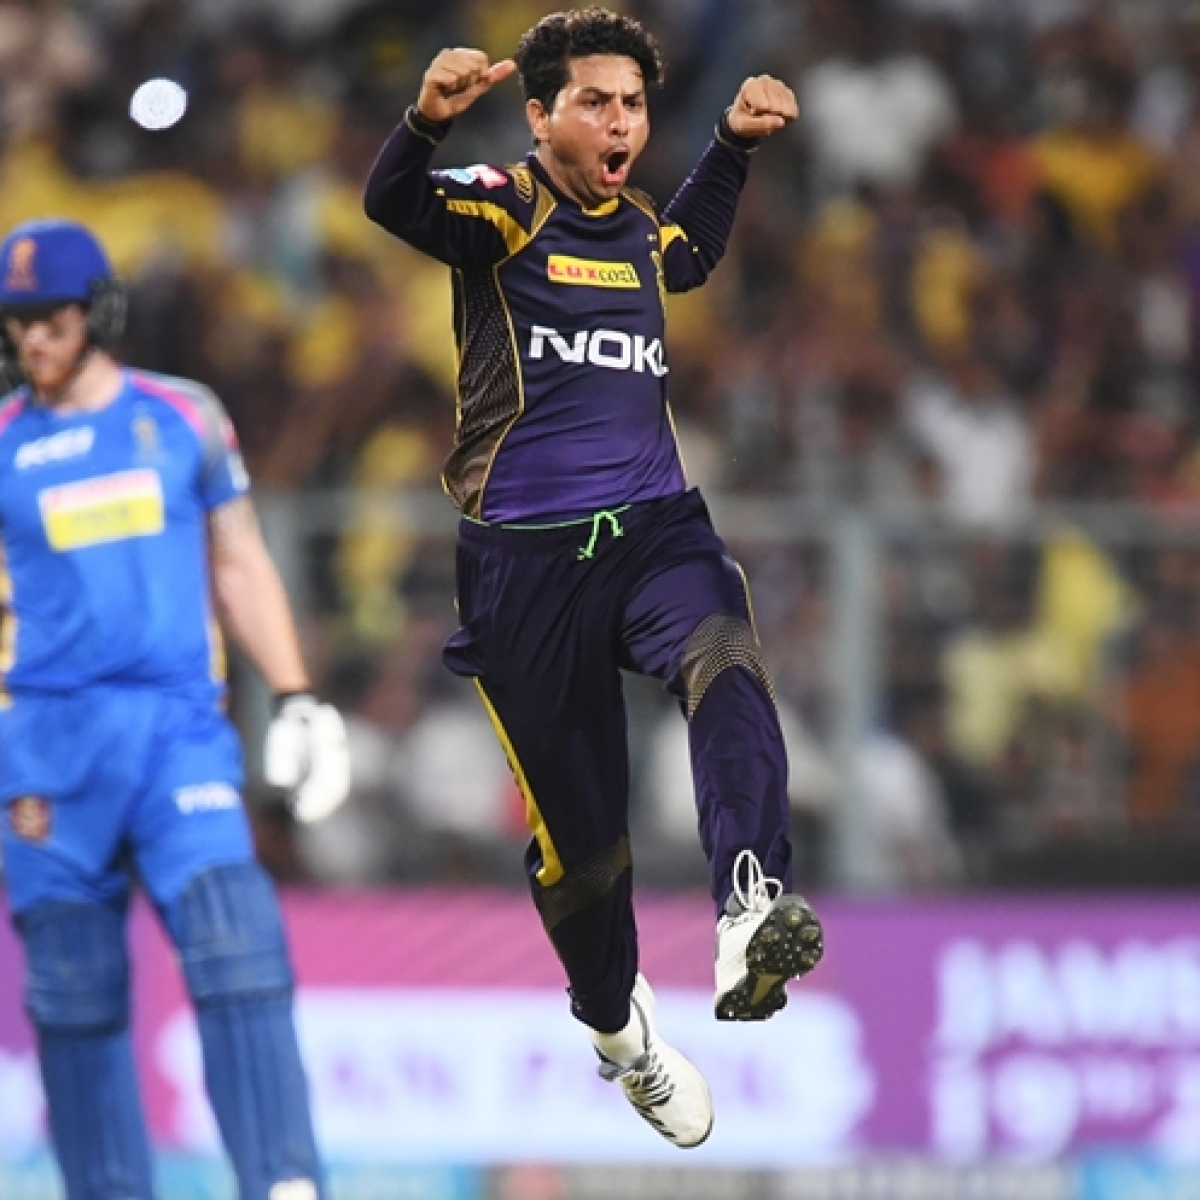 Kuldeep Yadav hoping for fine IPL to cement place in T20 WC team